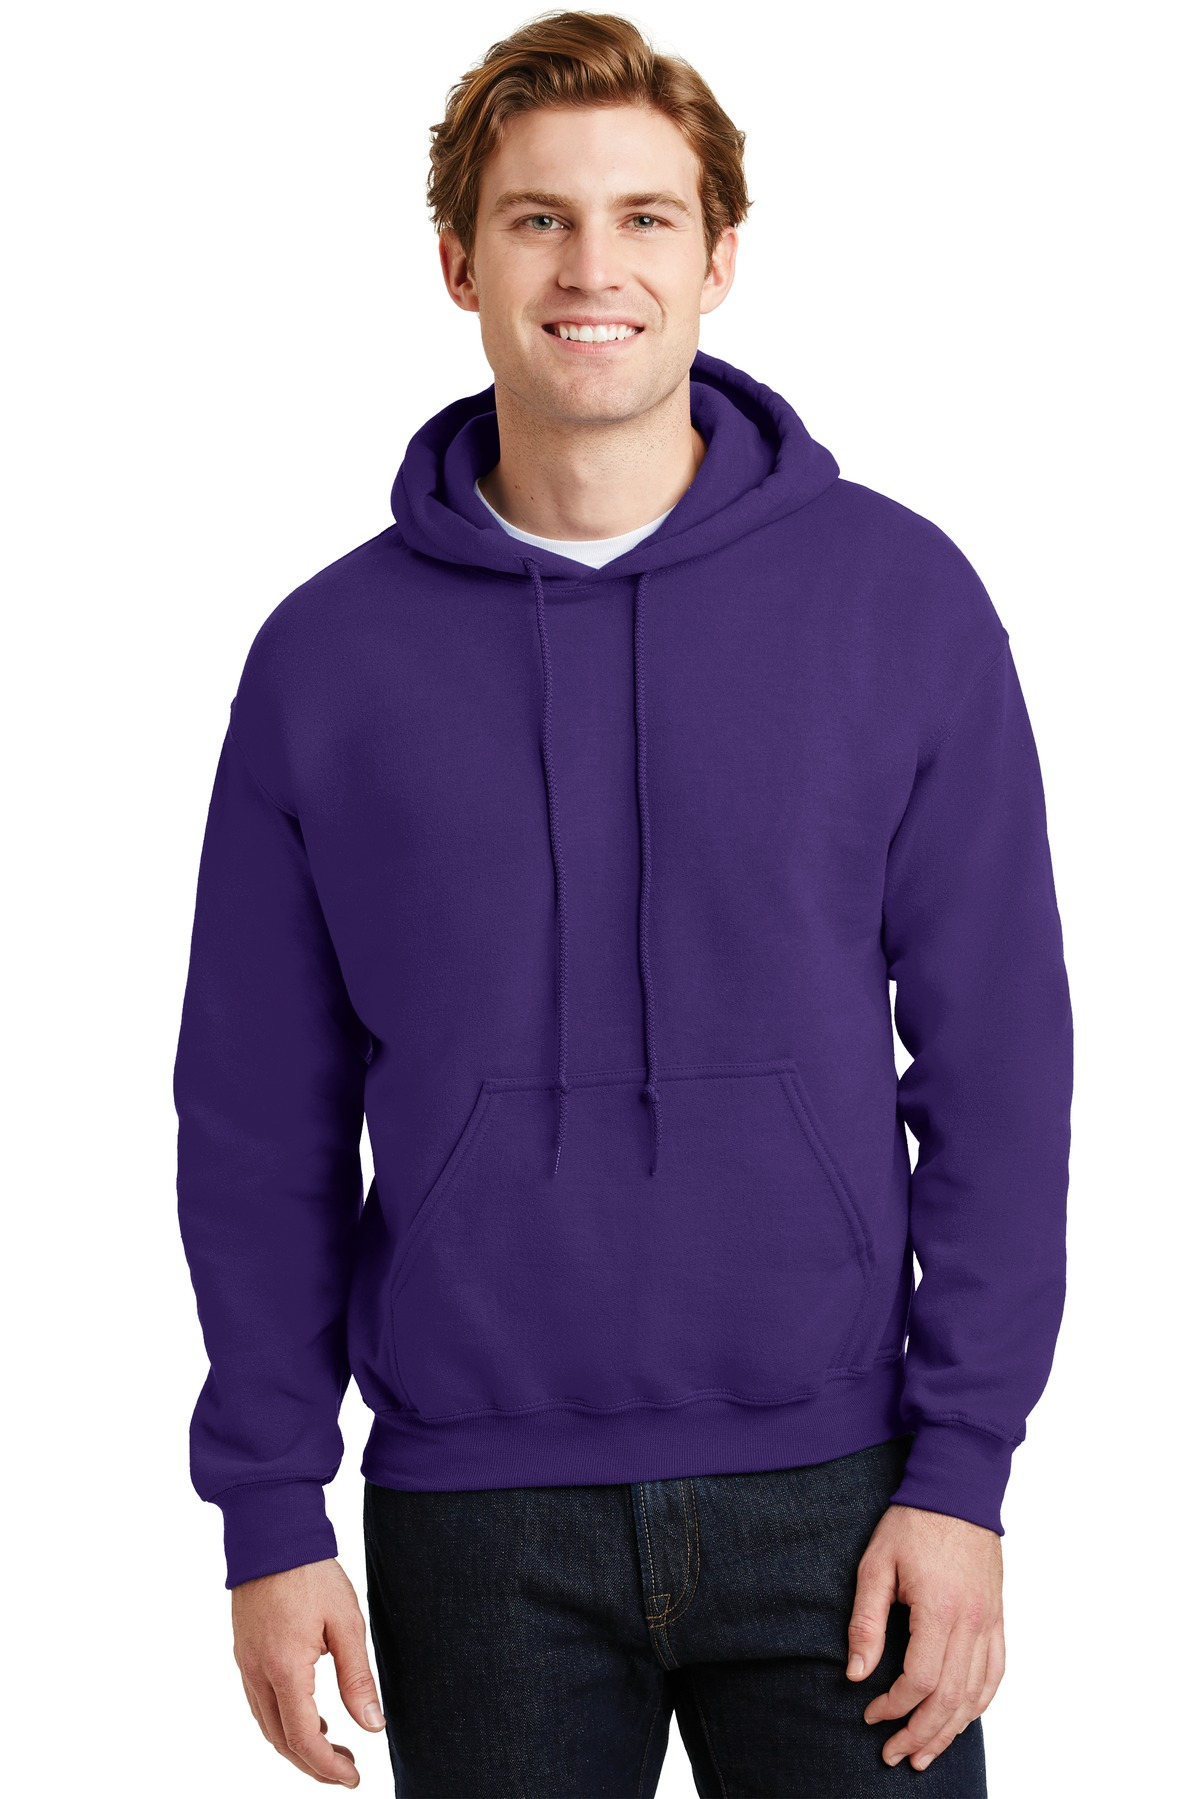 Gildan ®  - Heavy Blend ™  Hooded Sweatshirt.  18500 - Purple